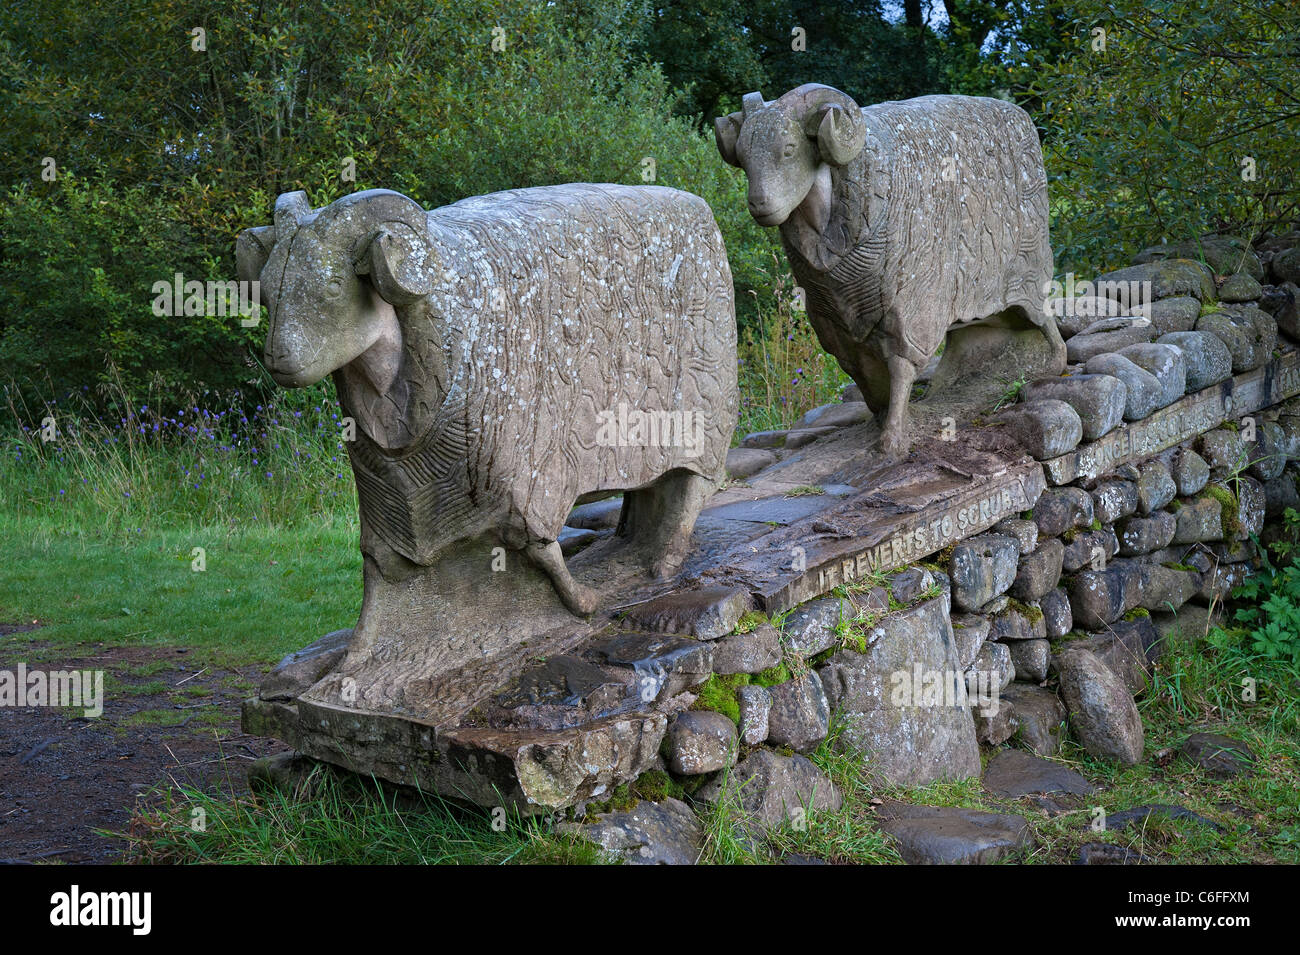 Teesdale  - stone sheep sculpture near Low Force waterfall - Stock Image